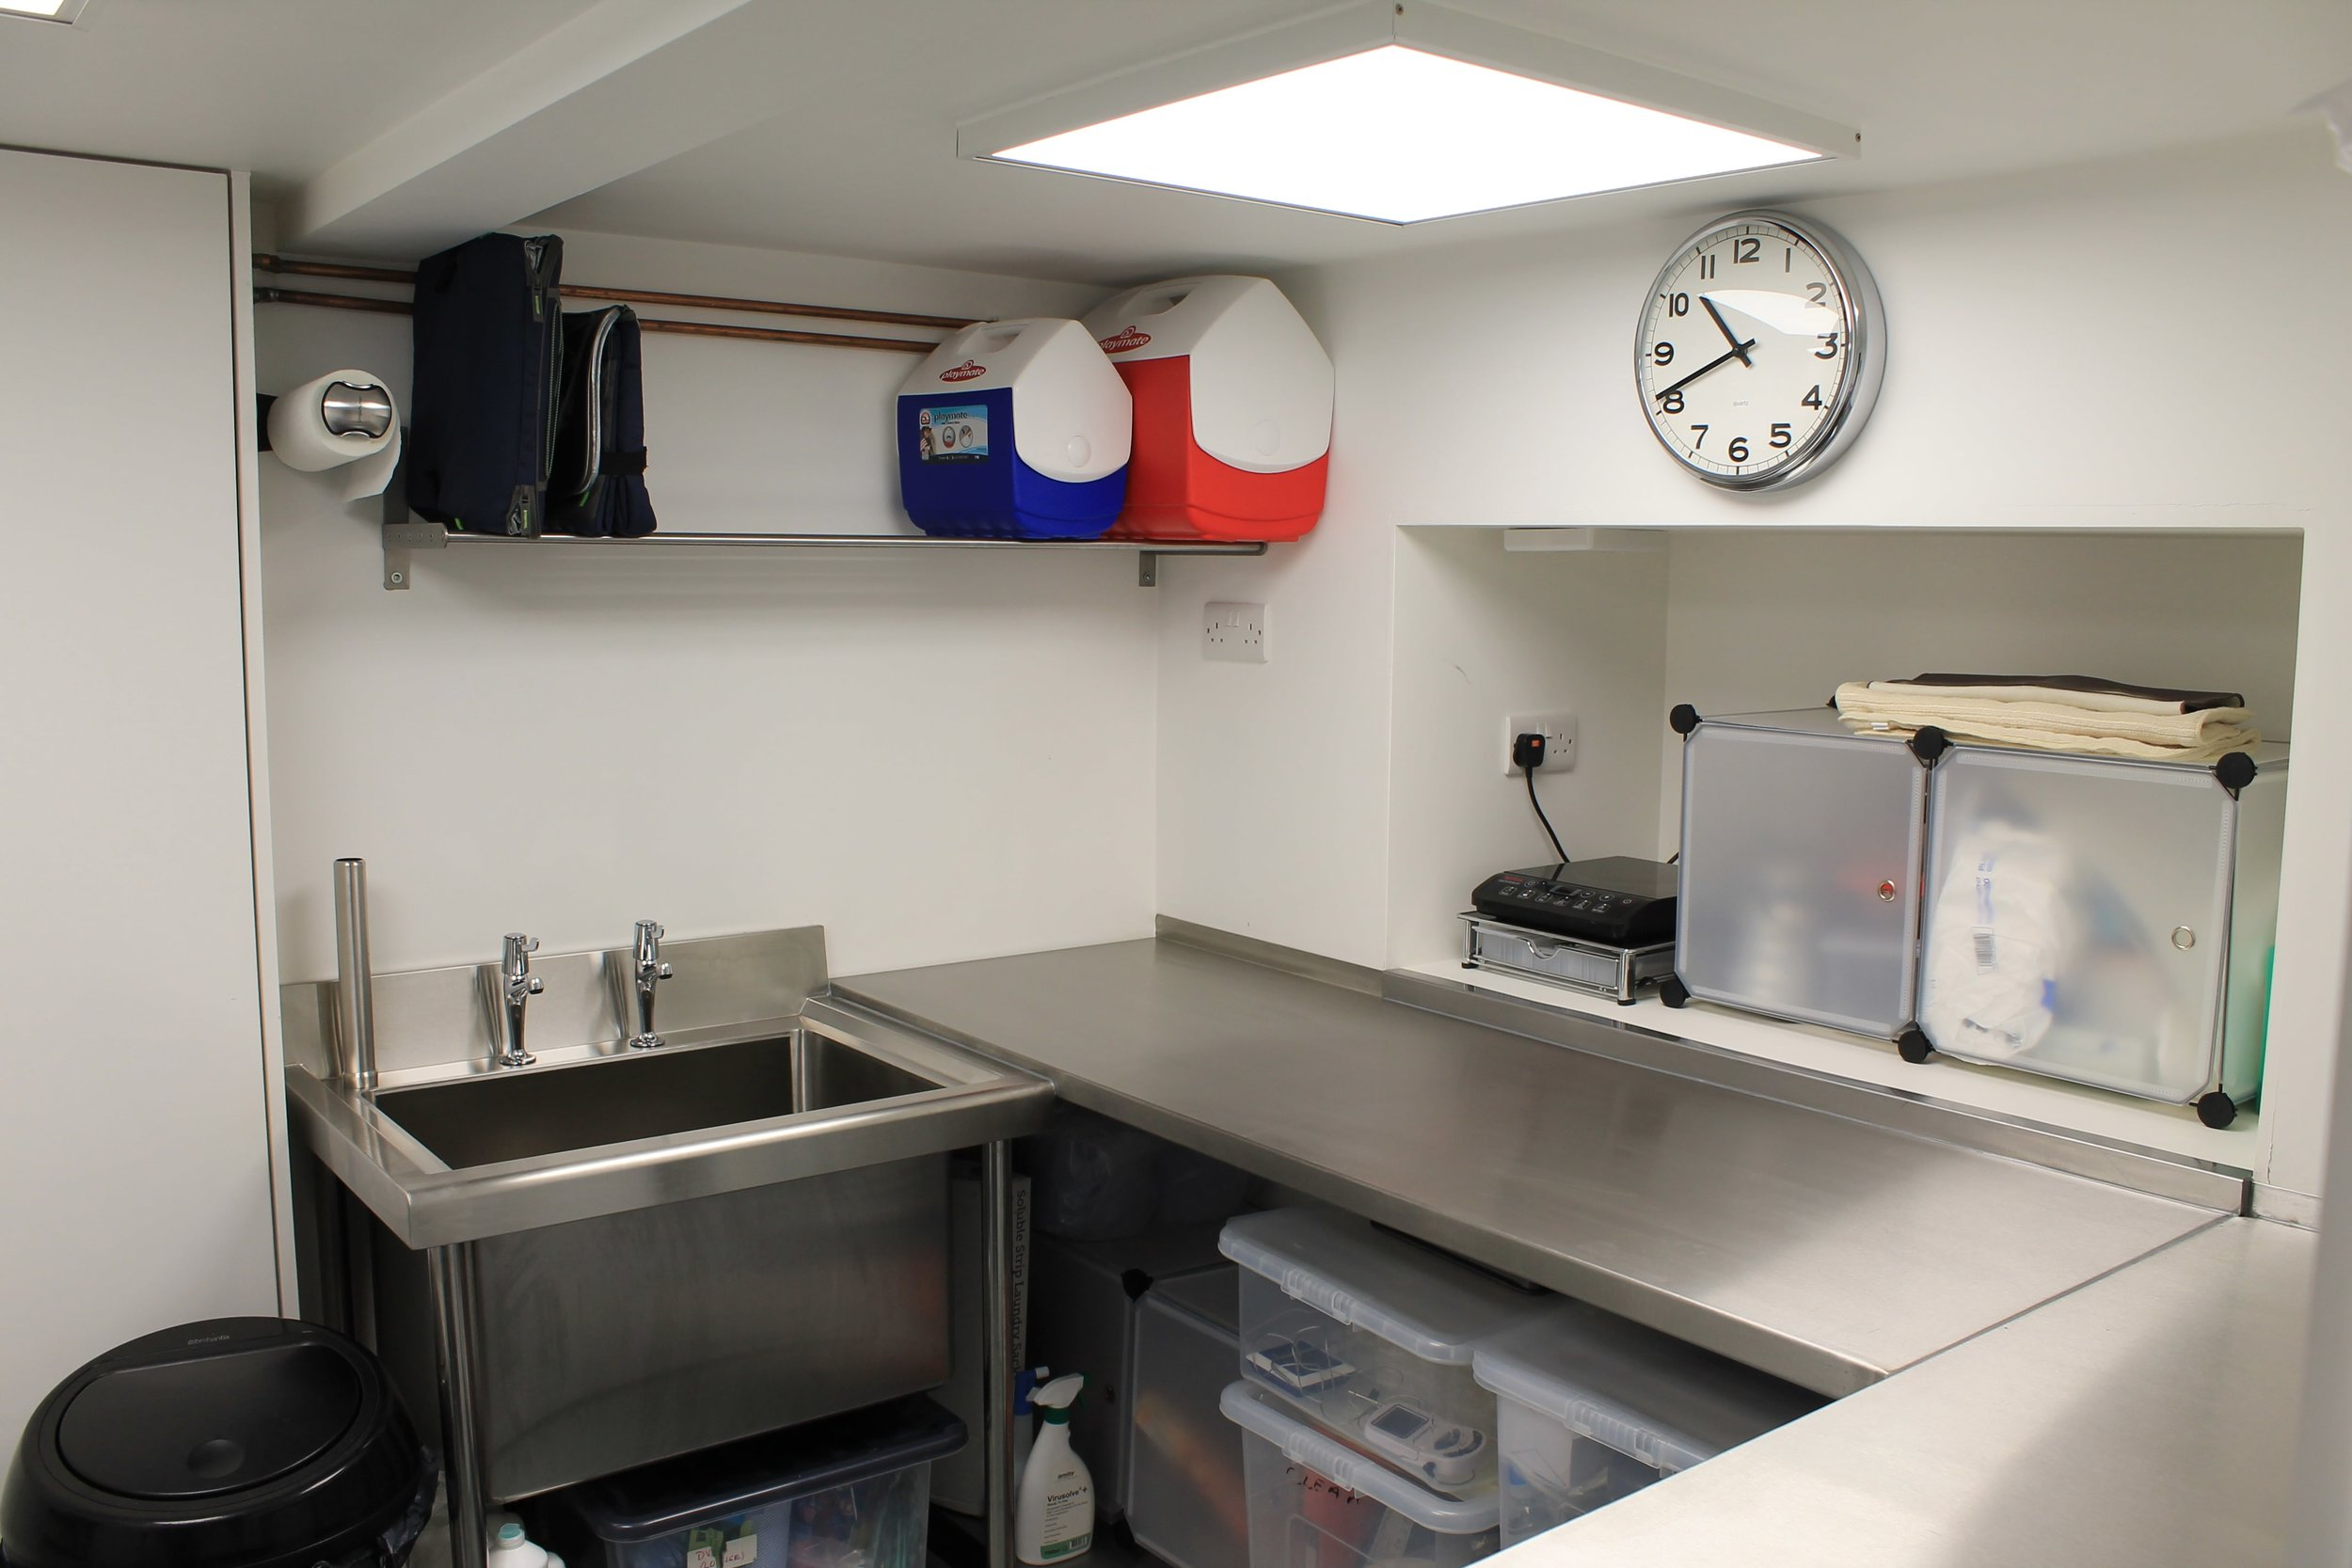 Dedicated placenta kitchen workspace in Manchester showing hygienic and professional setup with stainless steel worktops and safely stored equipment.